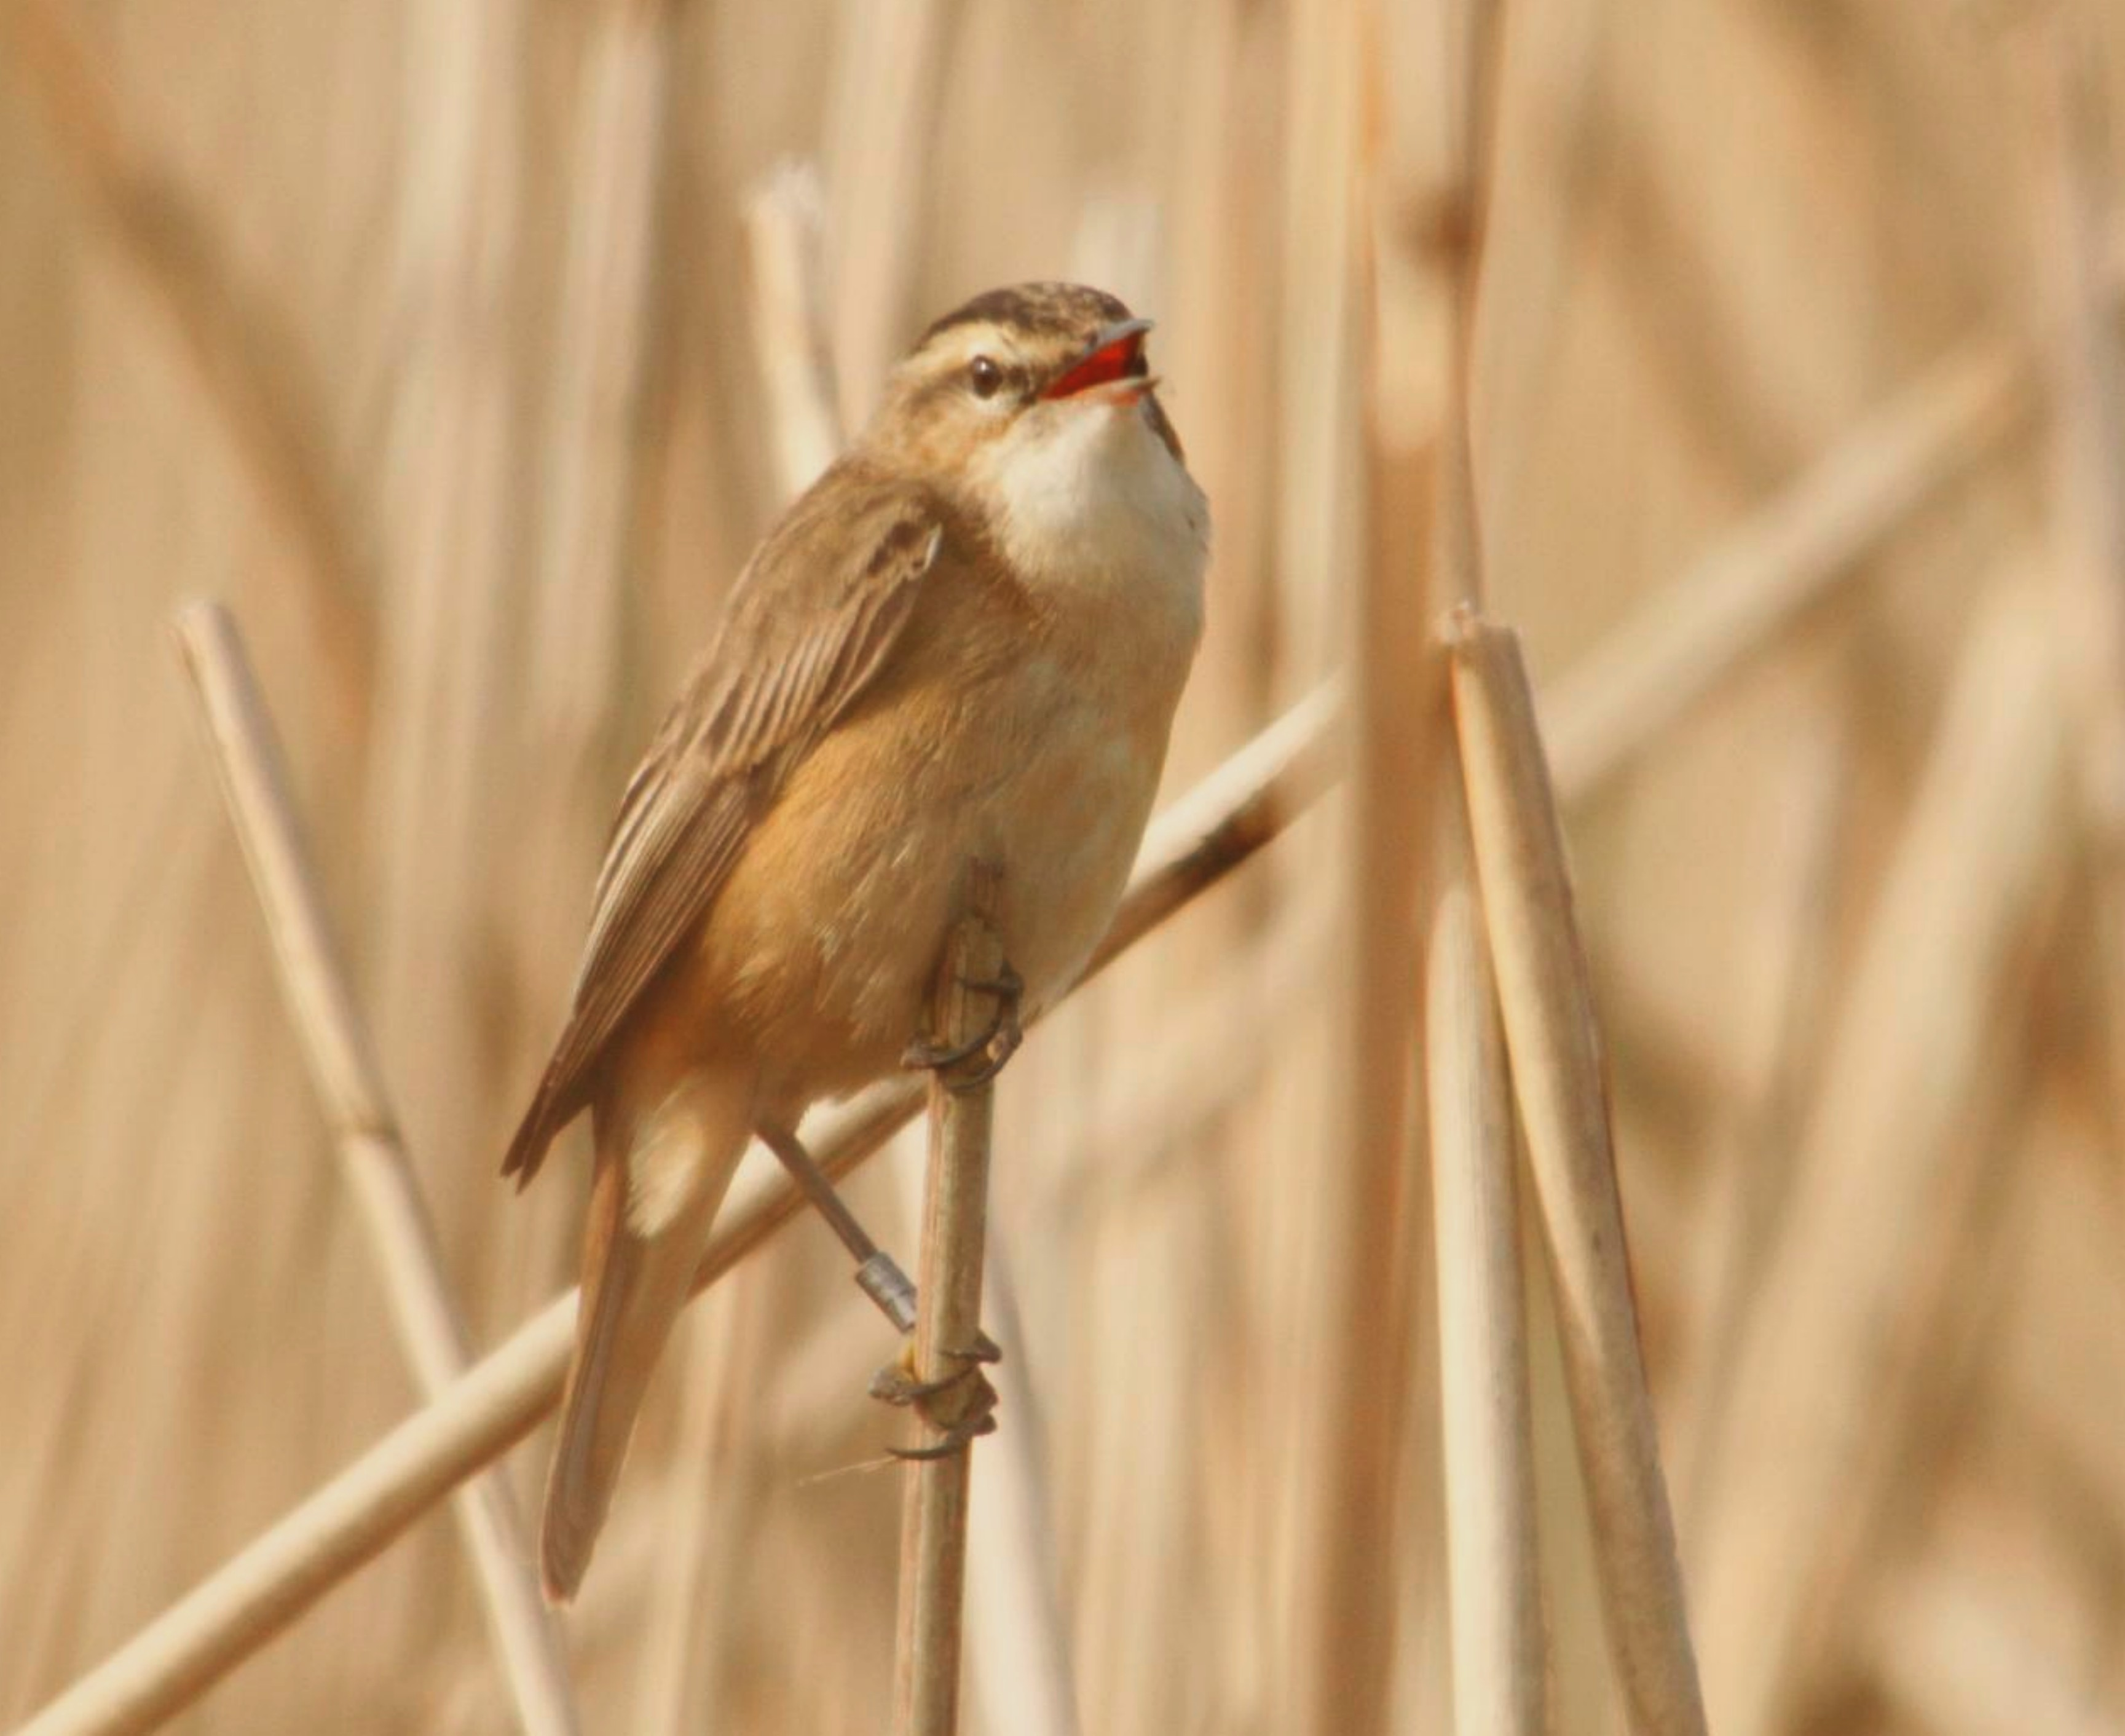 Reed Warbler Identify This Wildlife The Rspb Community